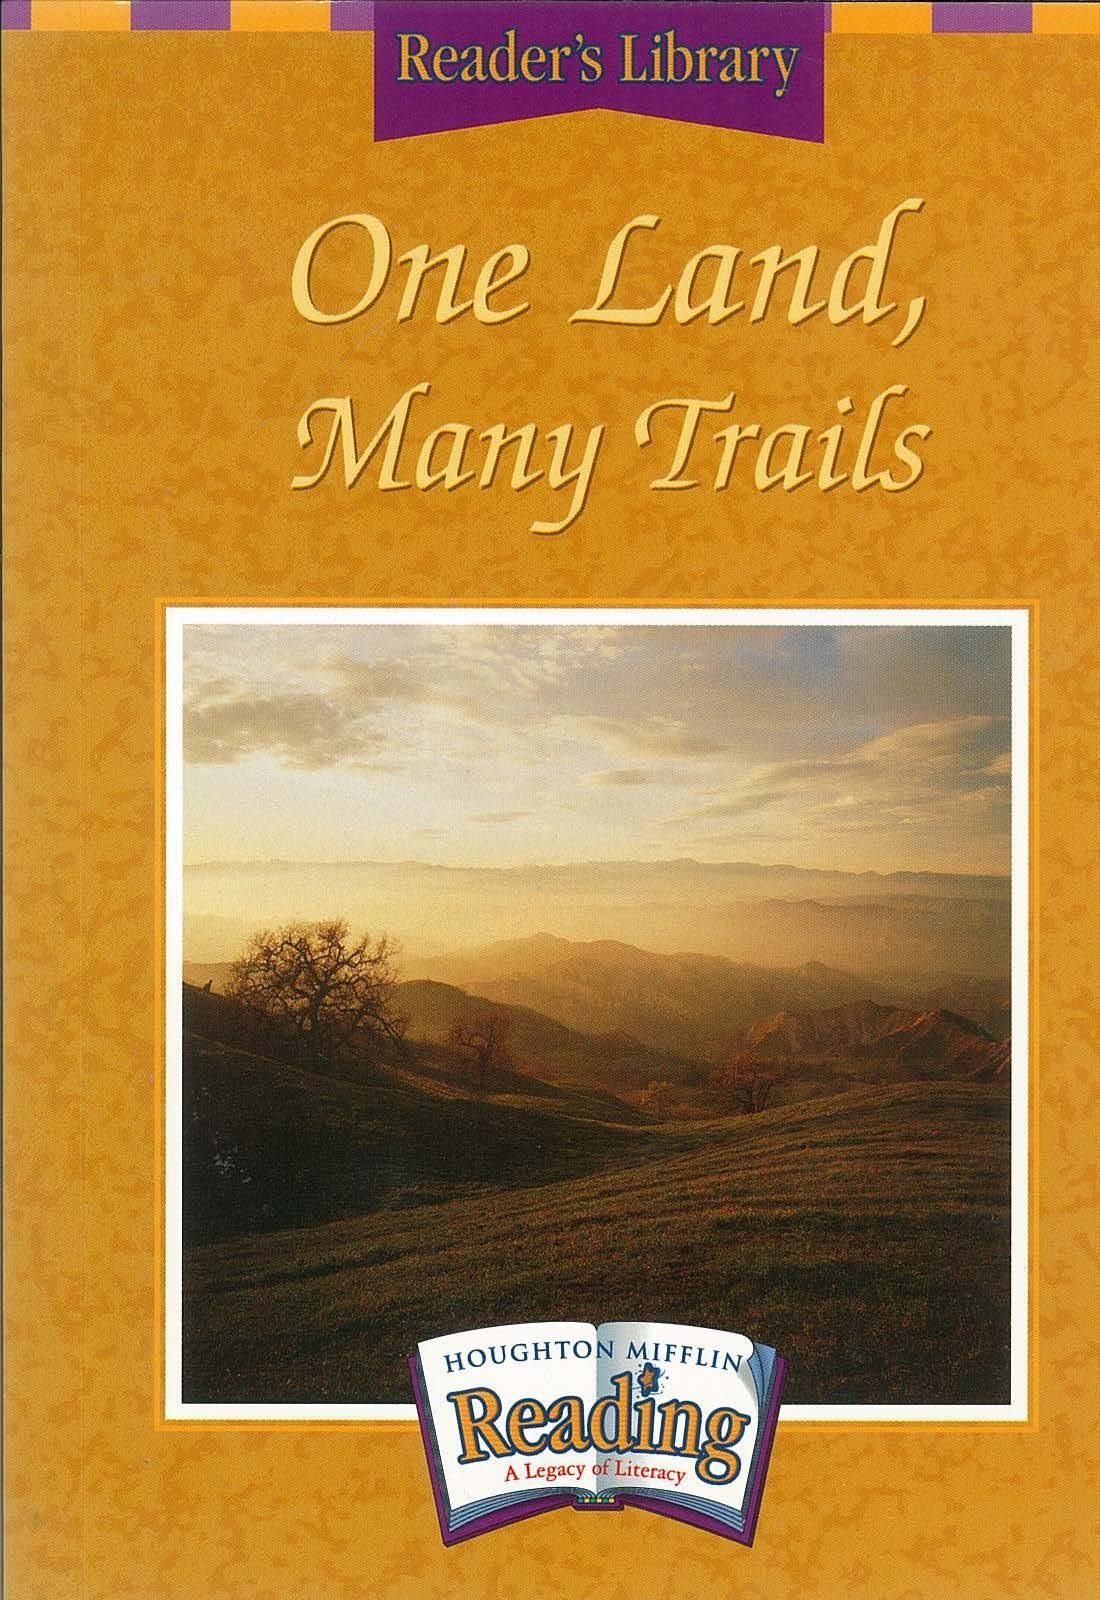 Read Online Houghton Mifflin Reading: The Nation's Choice: Reader's Library Grade 5 Theme 5 - One Land, Many Trails pdf